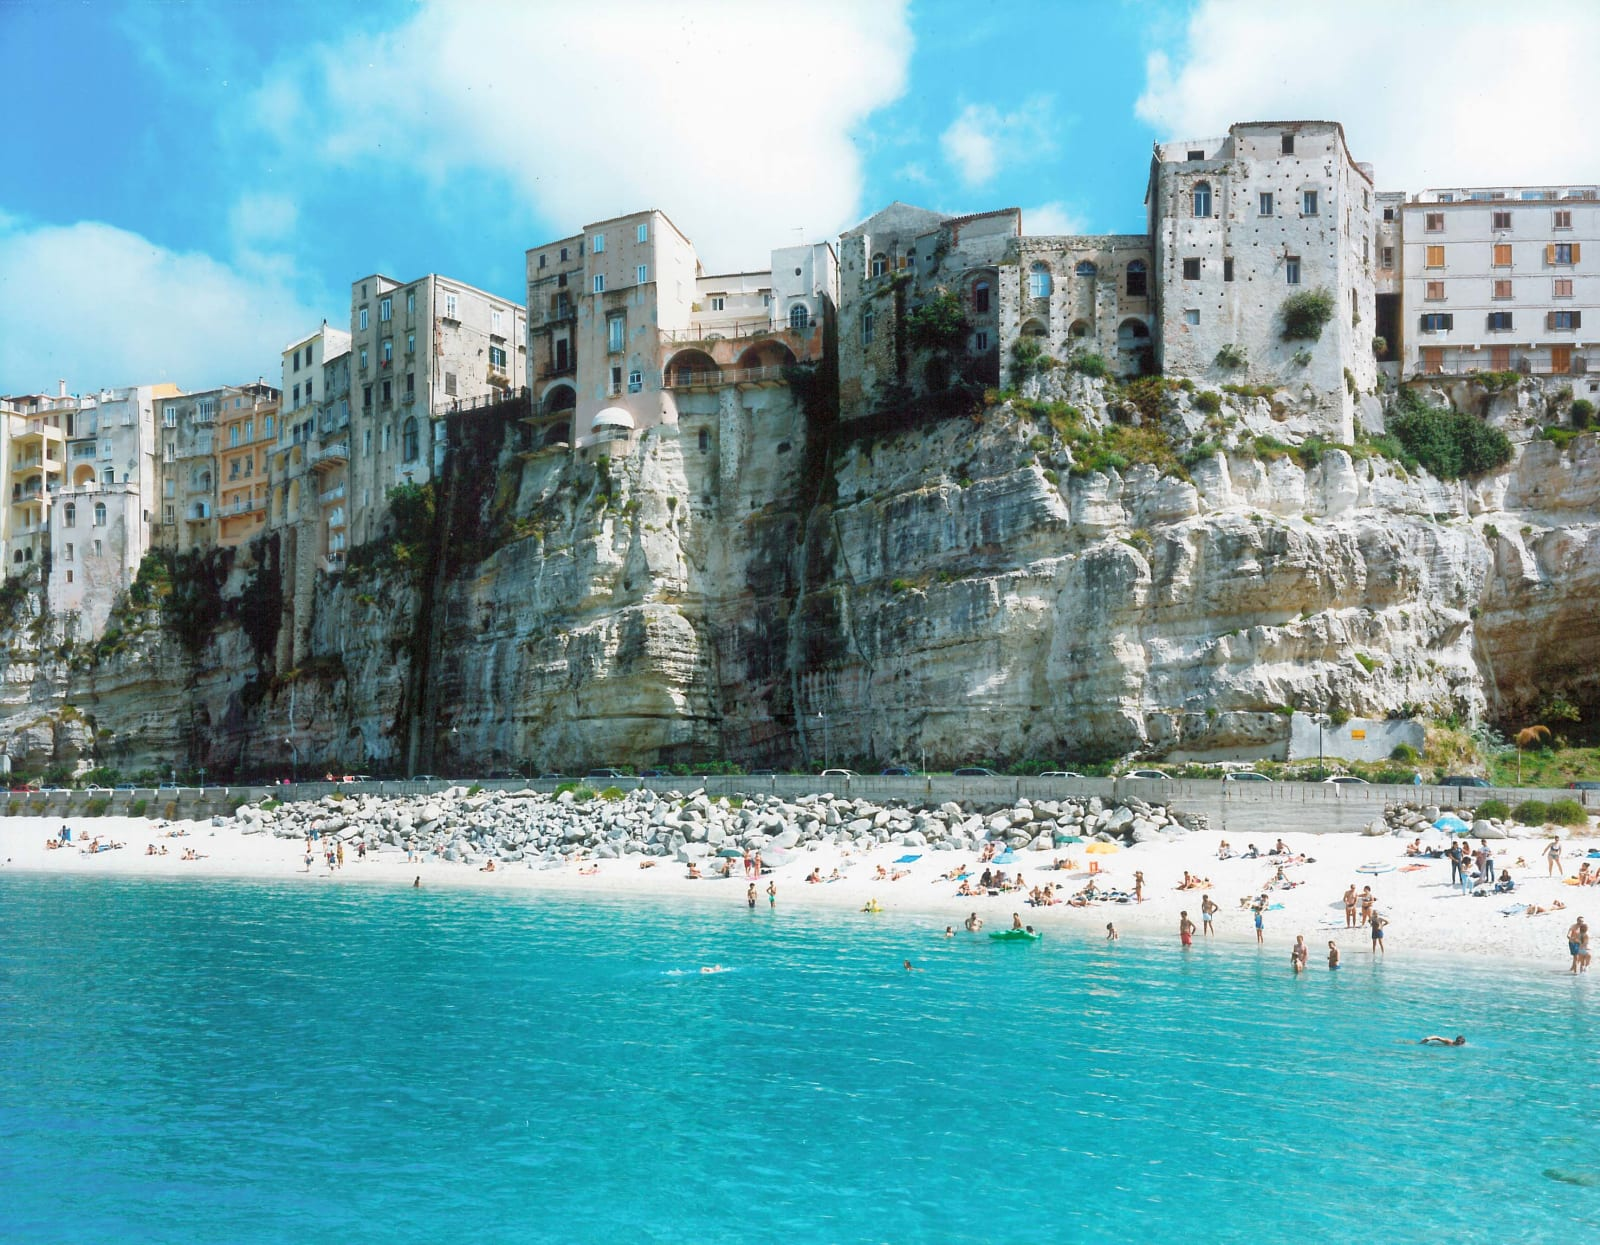 Aquamarine sea with beachgoers, below old buildings built on cliffs, by Massimo Vitali